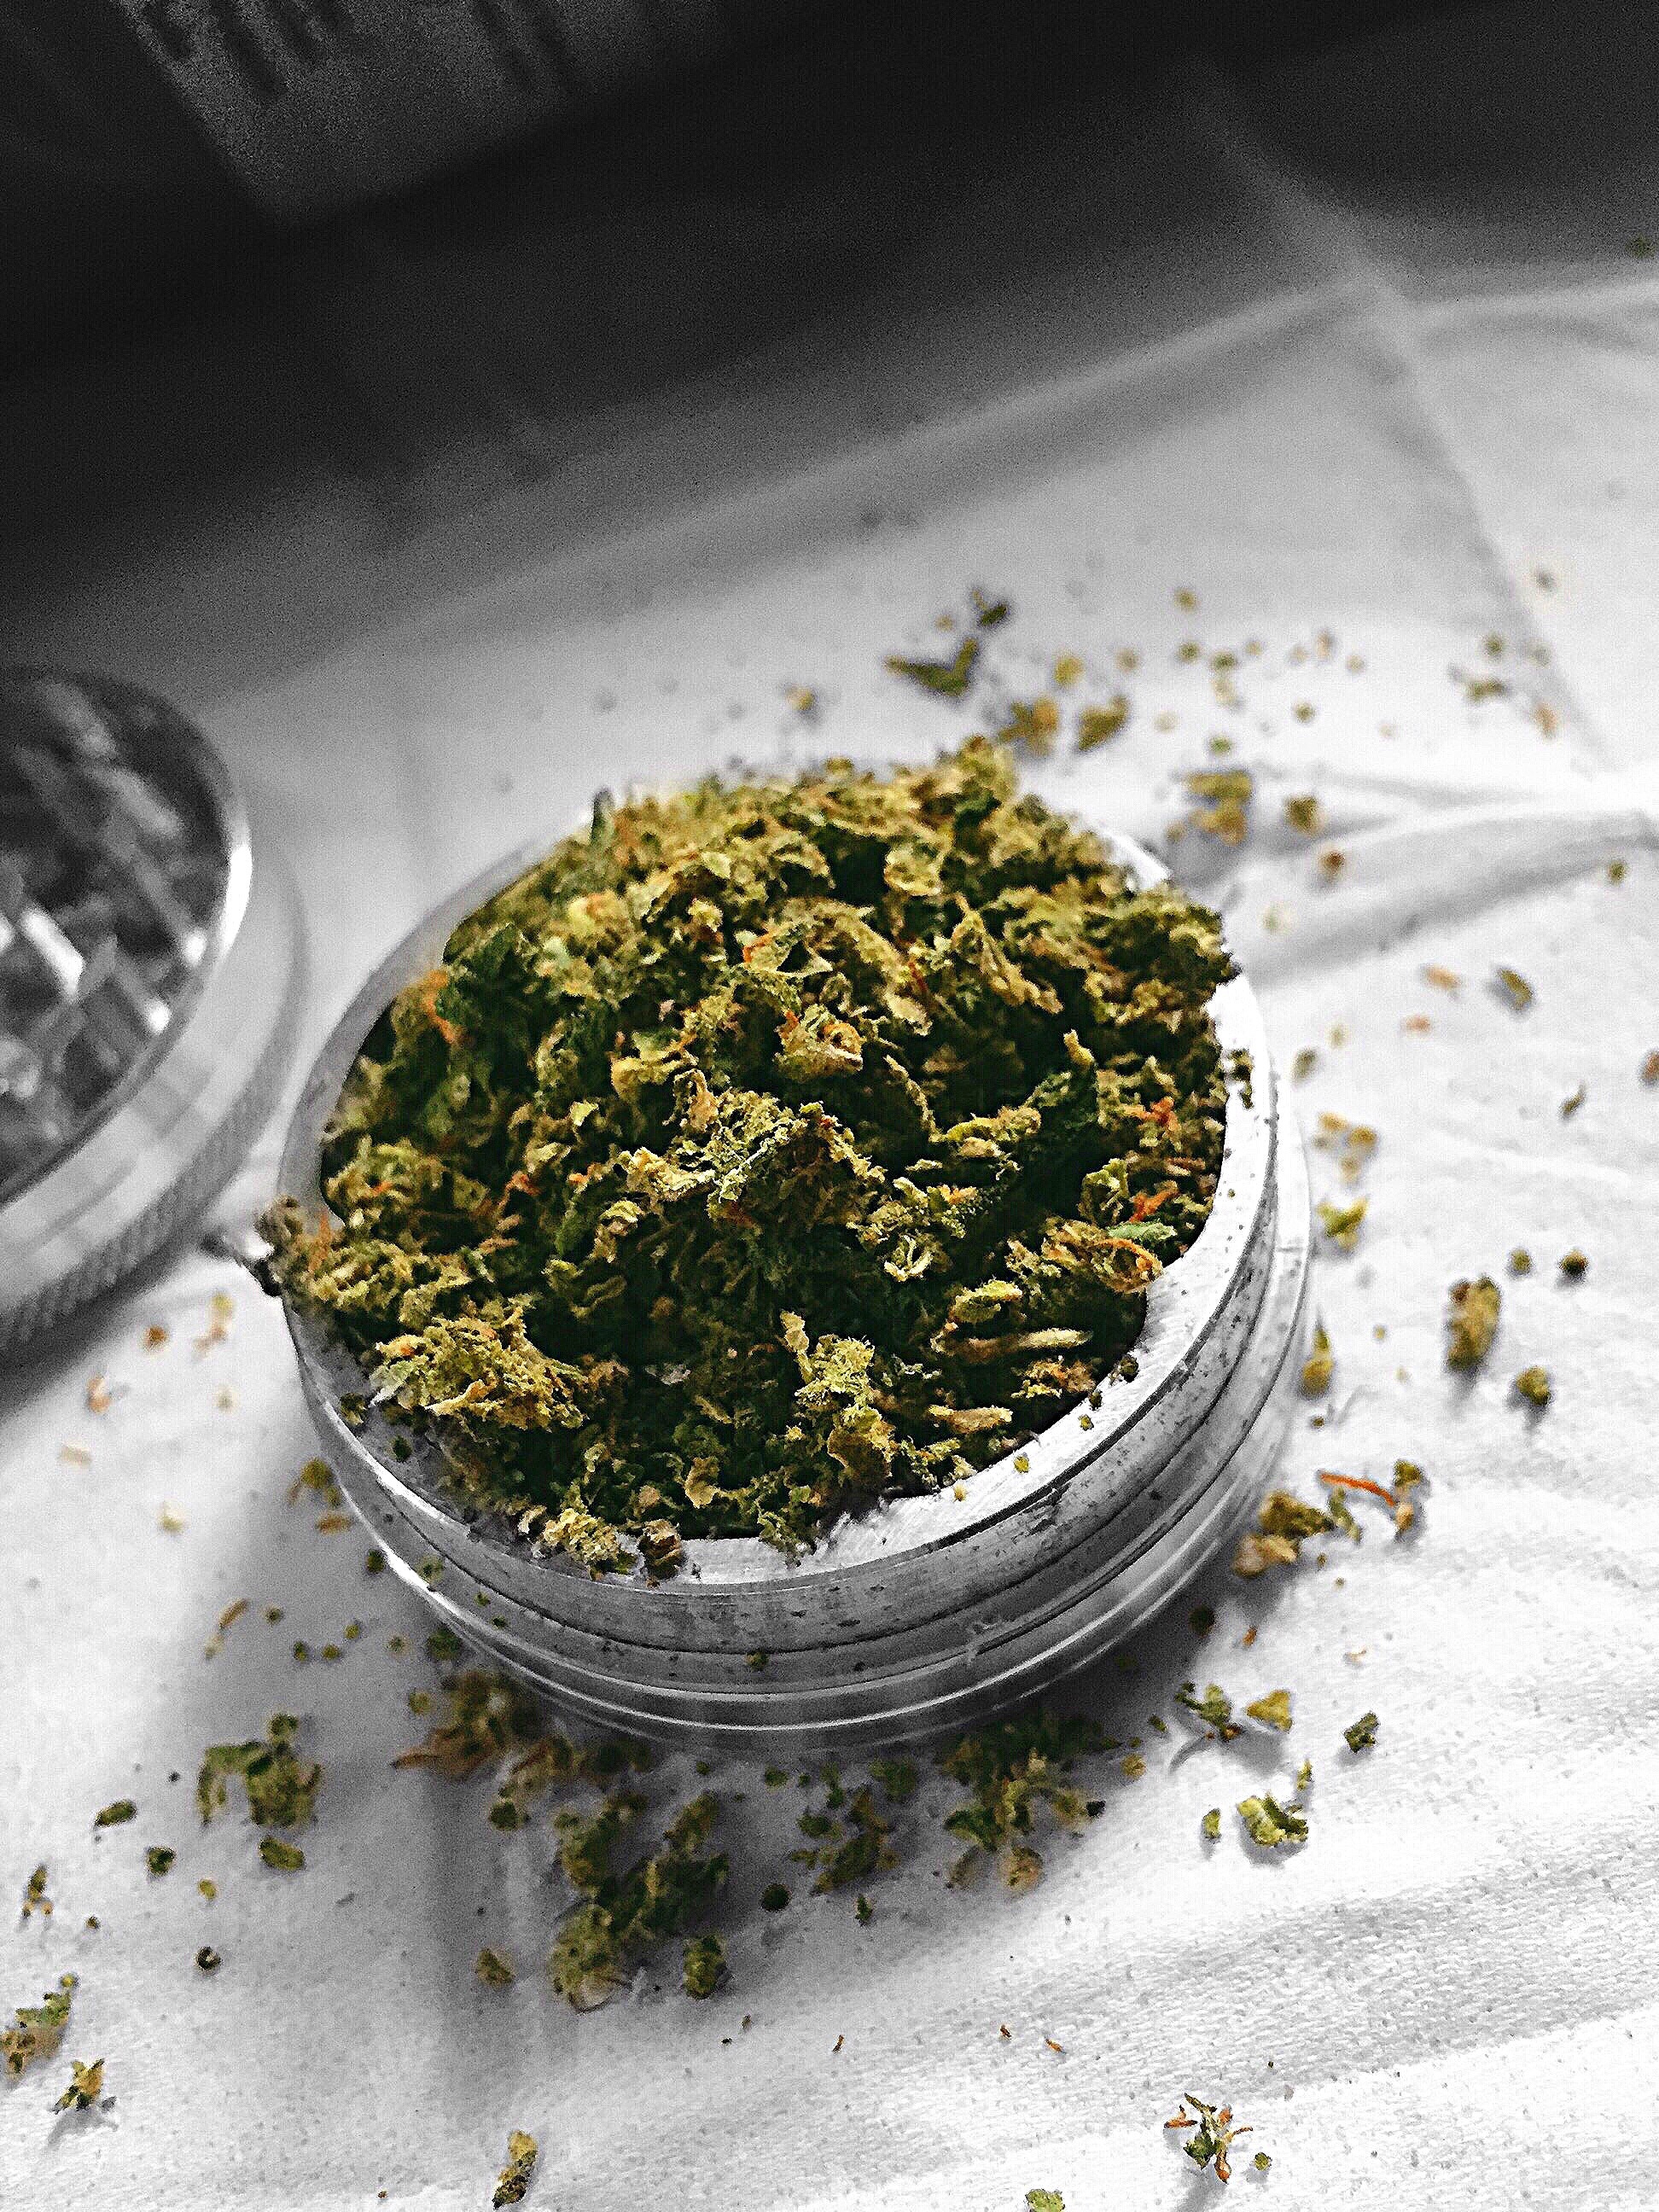 High Angle View Of Marijuana In Container On Table